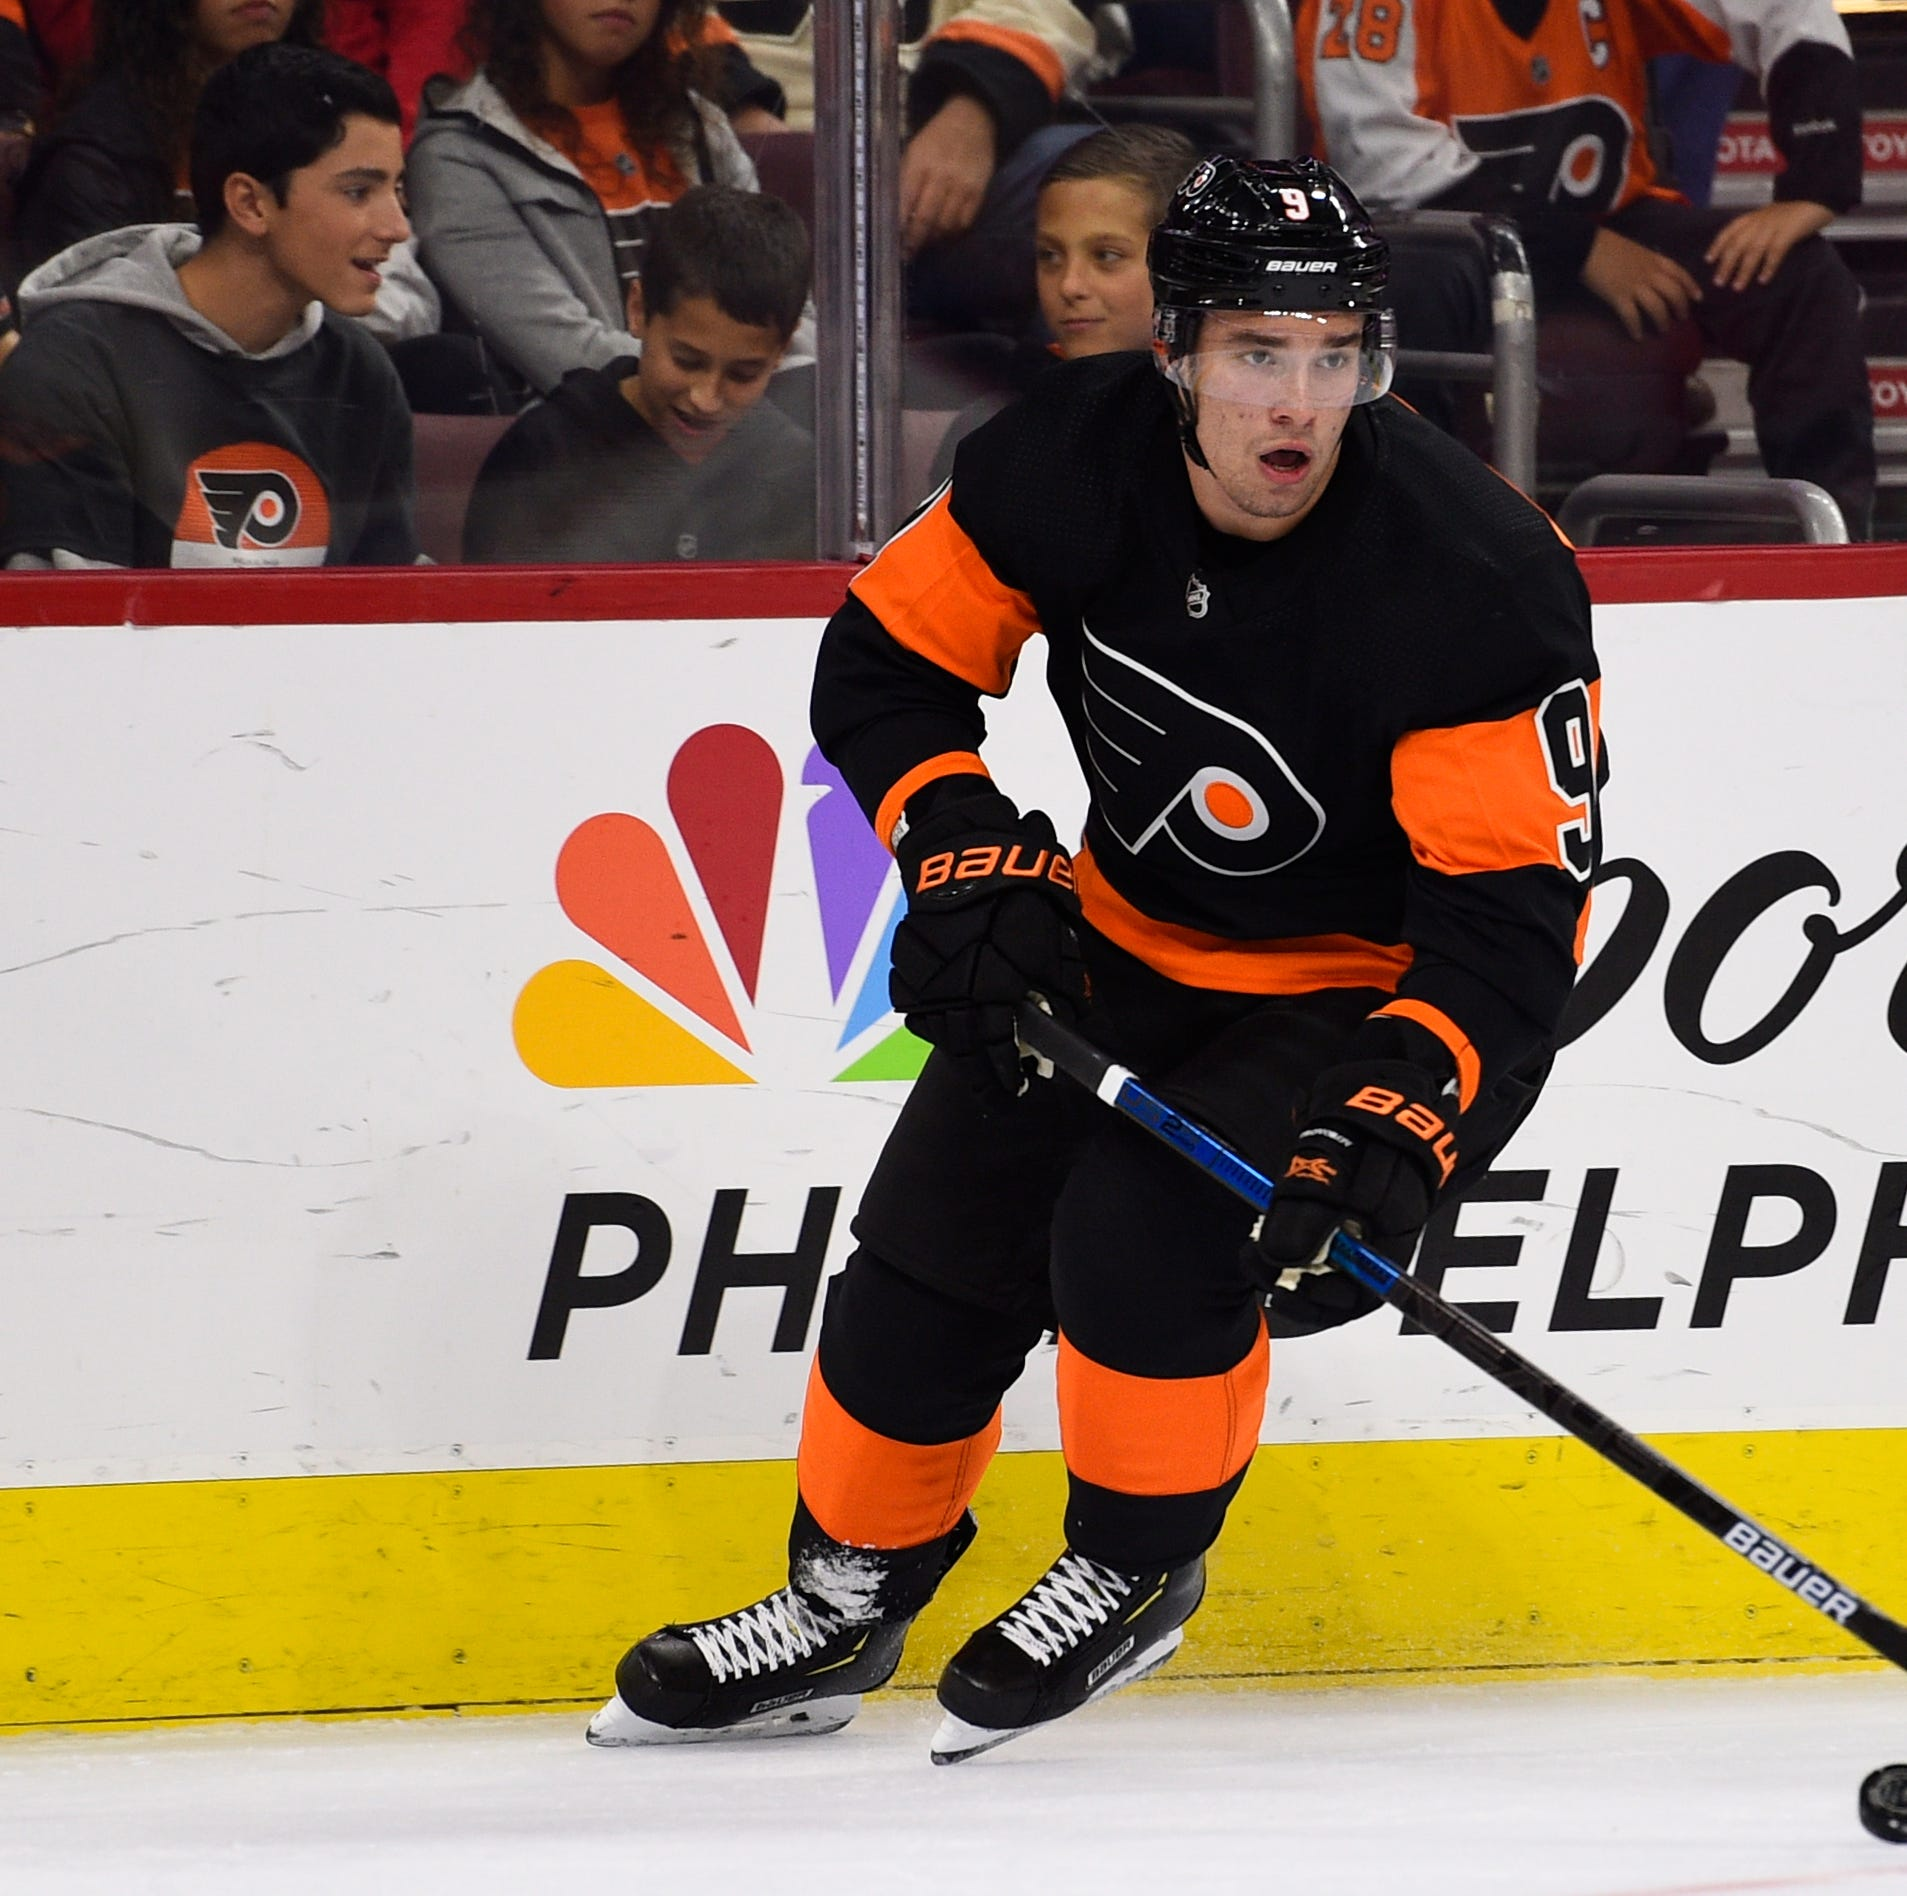 Ivan Provorov trying to play his way back 'from good to great'